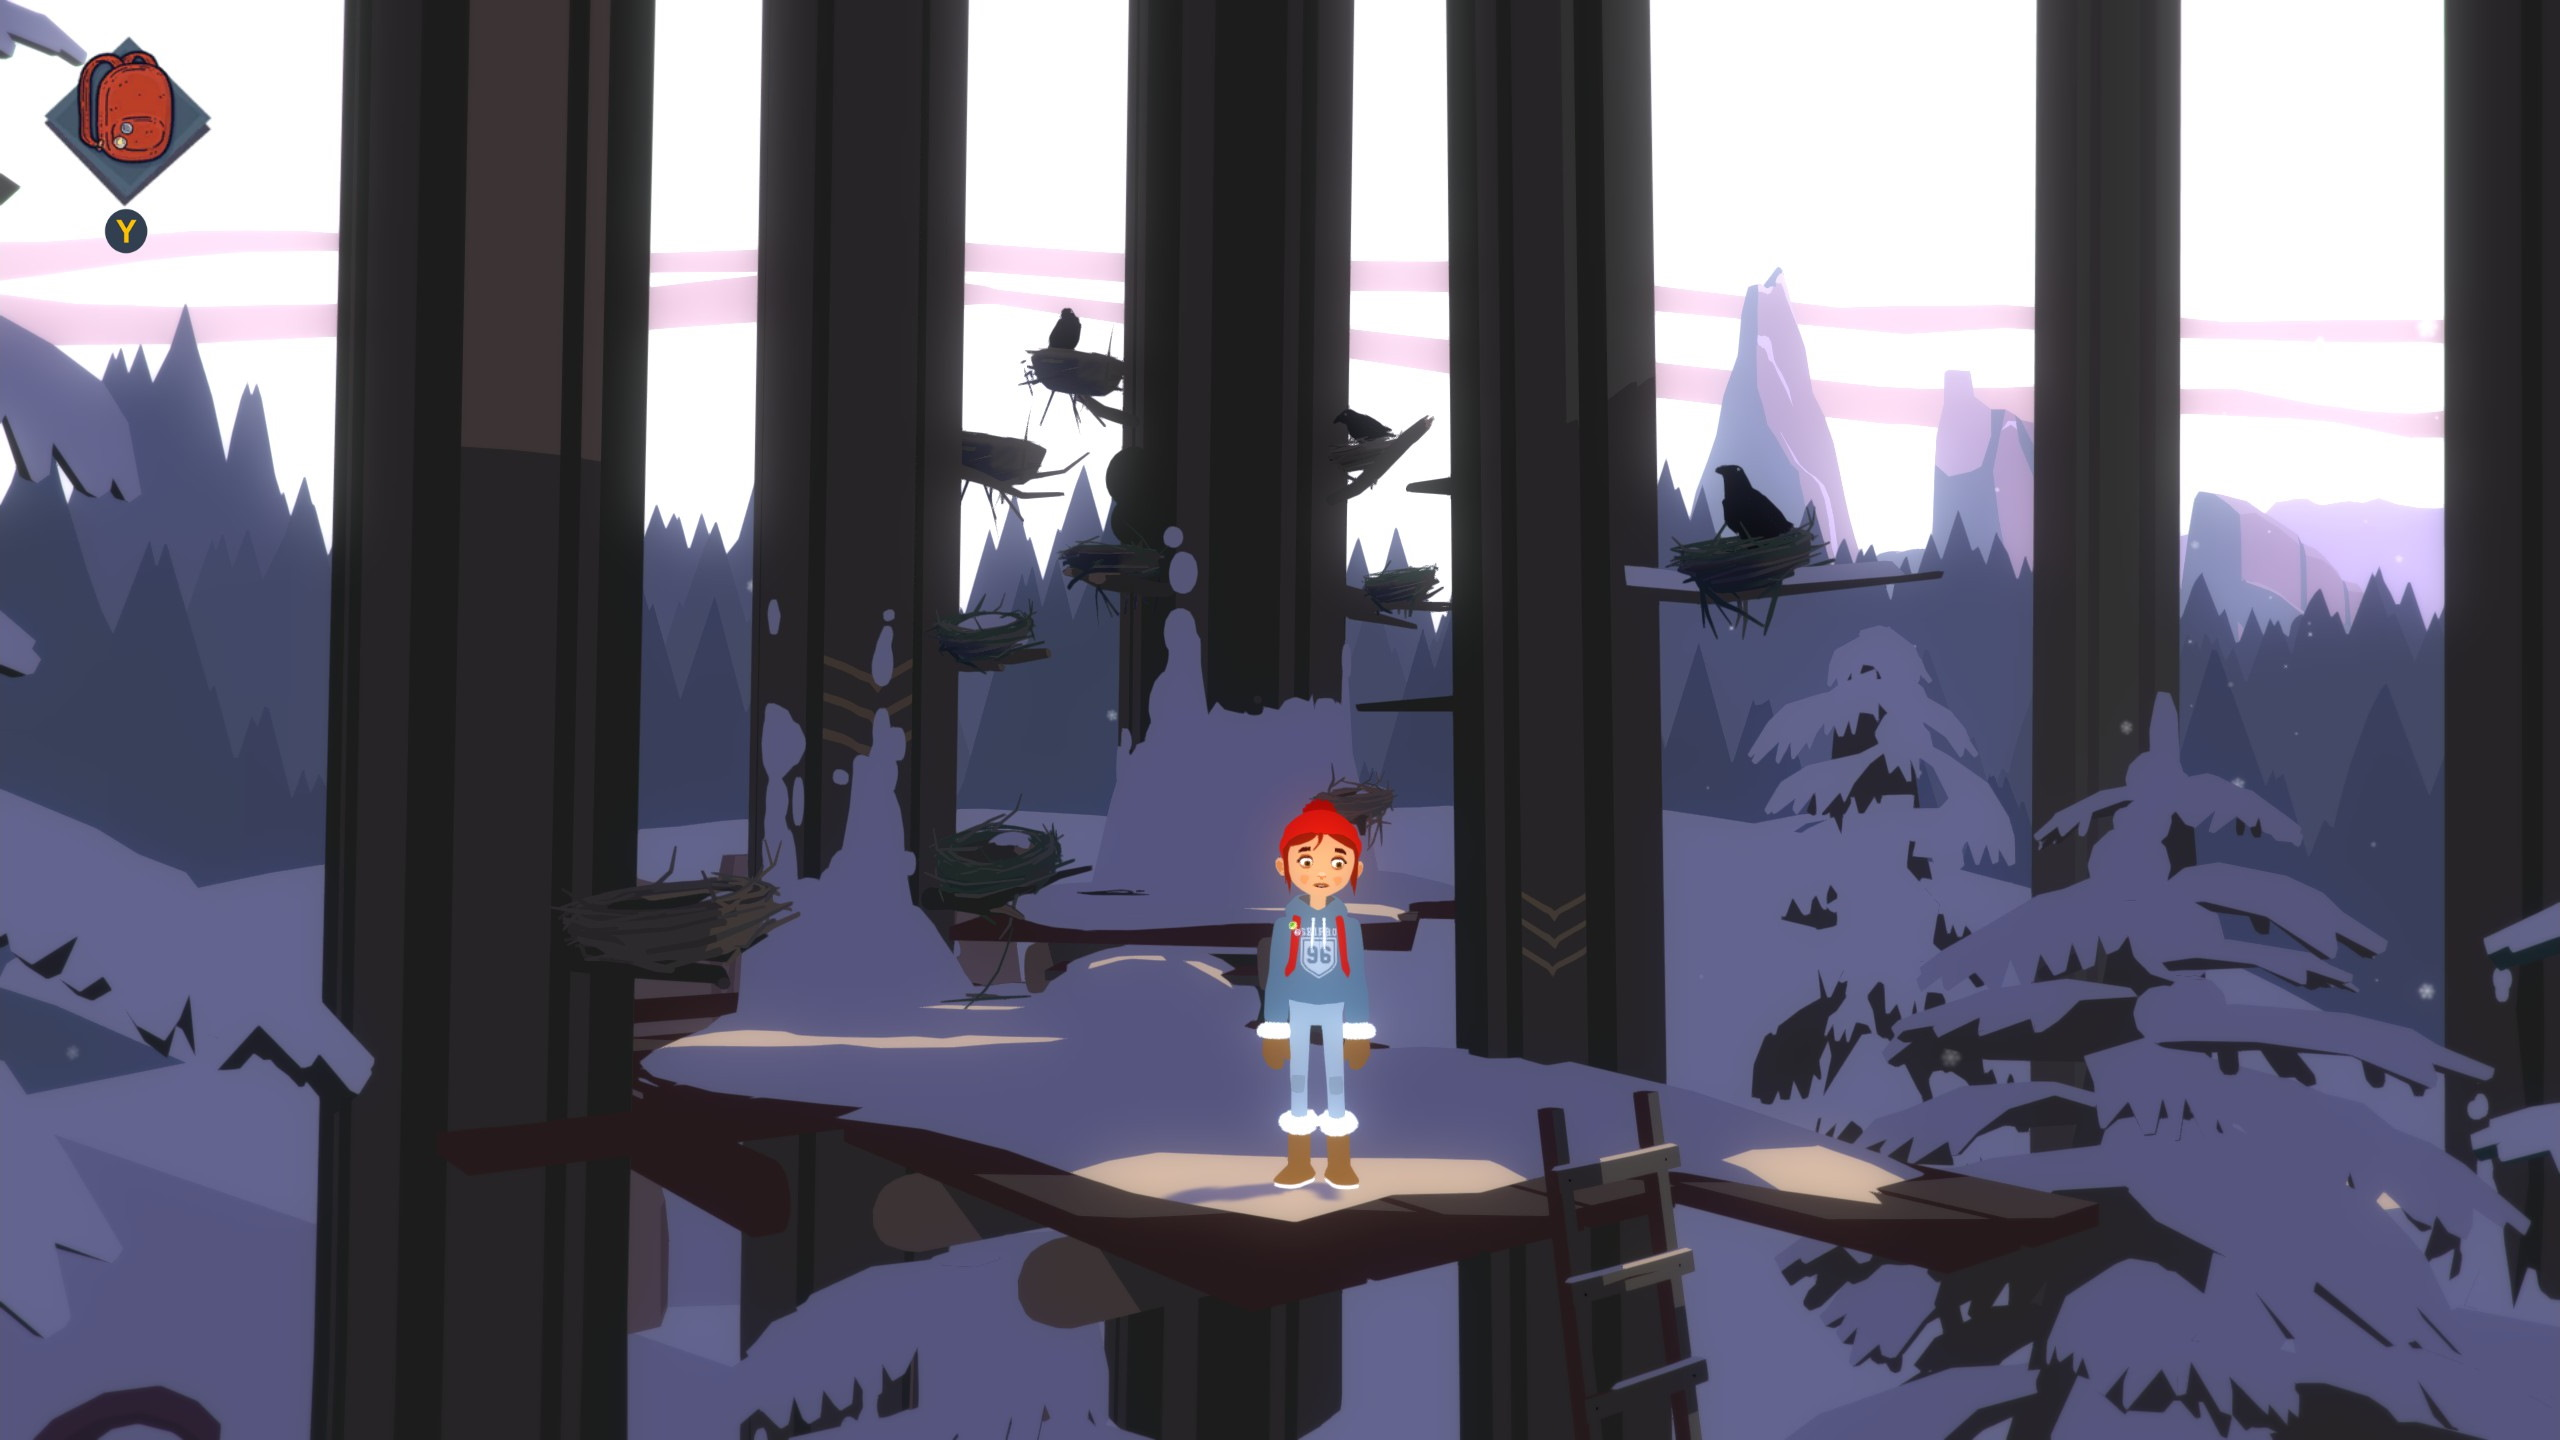 A screenshot of Tove from Roki standing on a ledge in the trees.